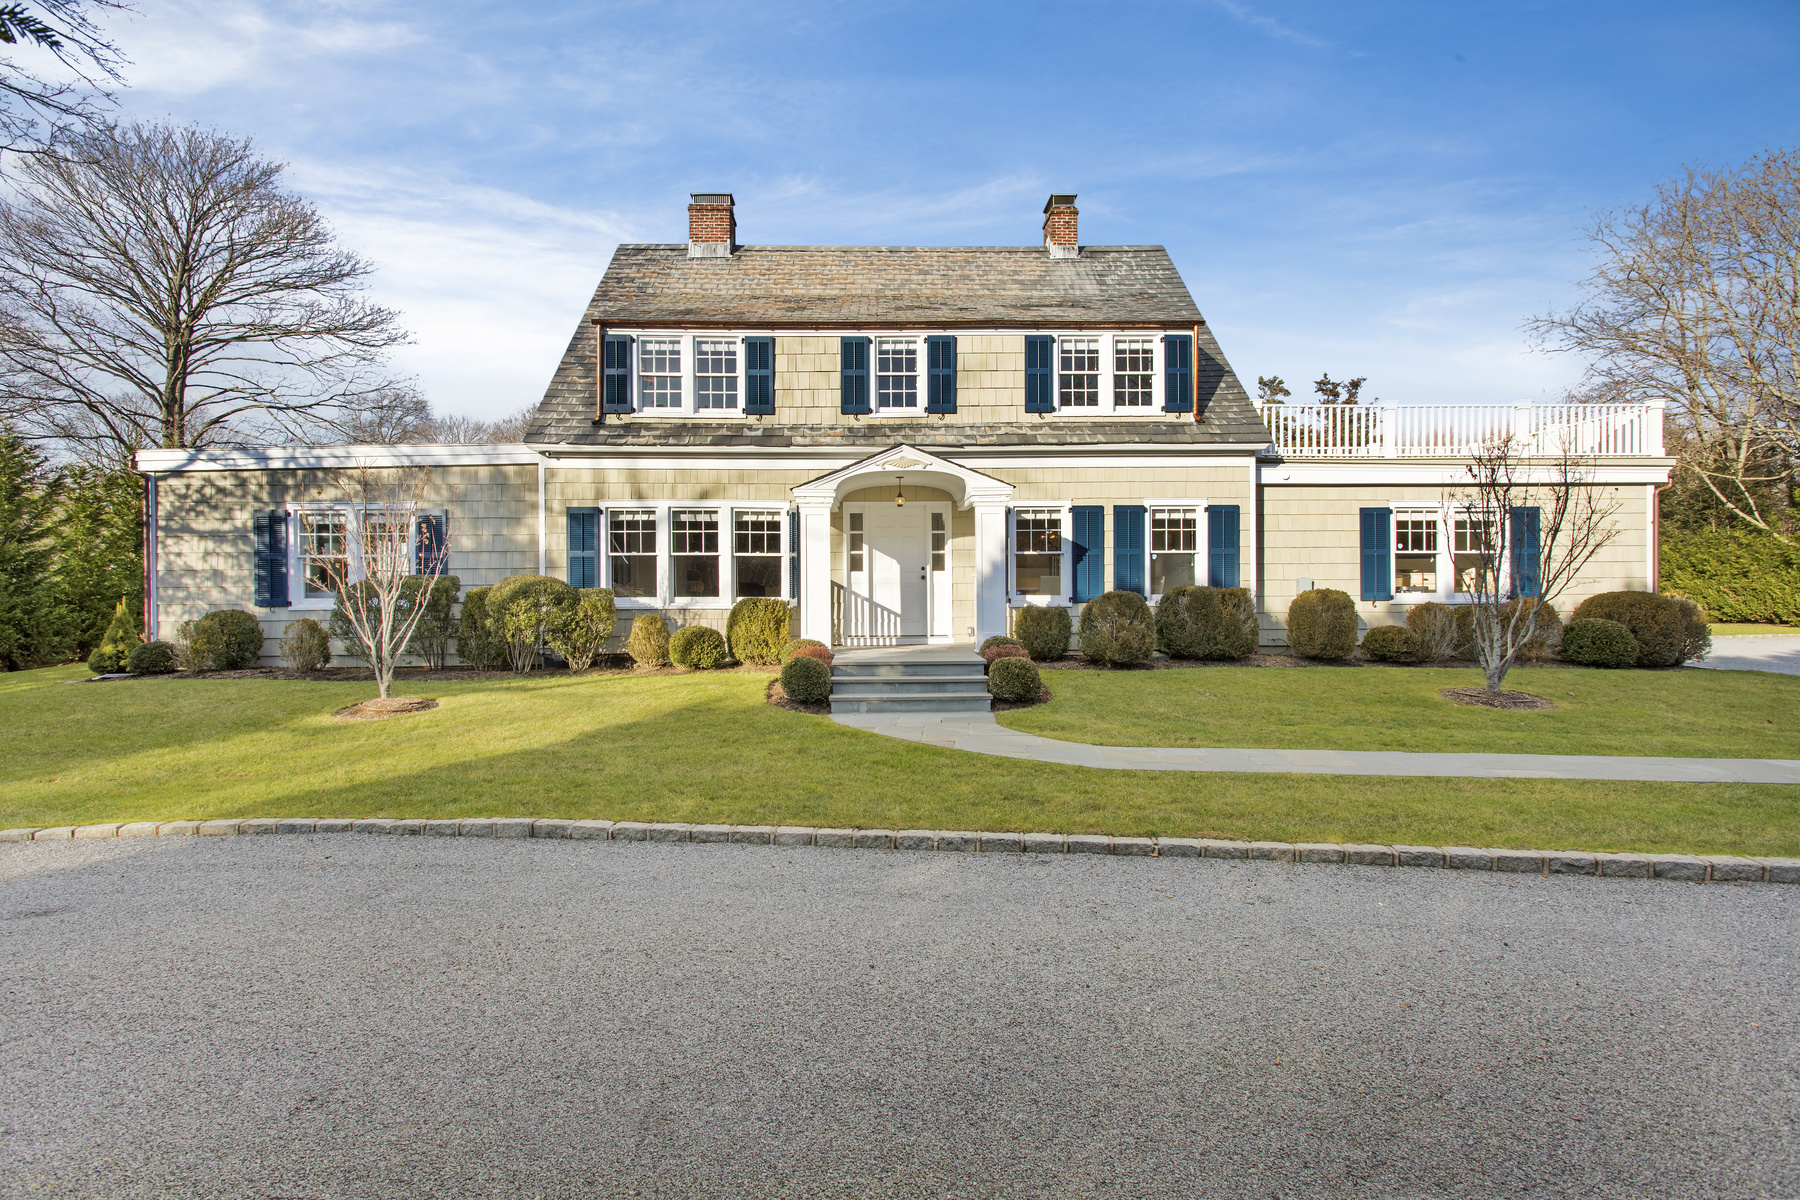 Hamptons homes, neighborhoods, architecture, and real estate ...